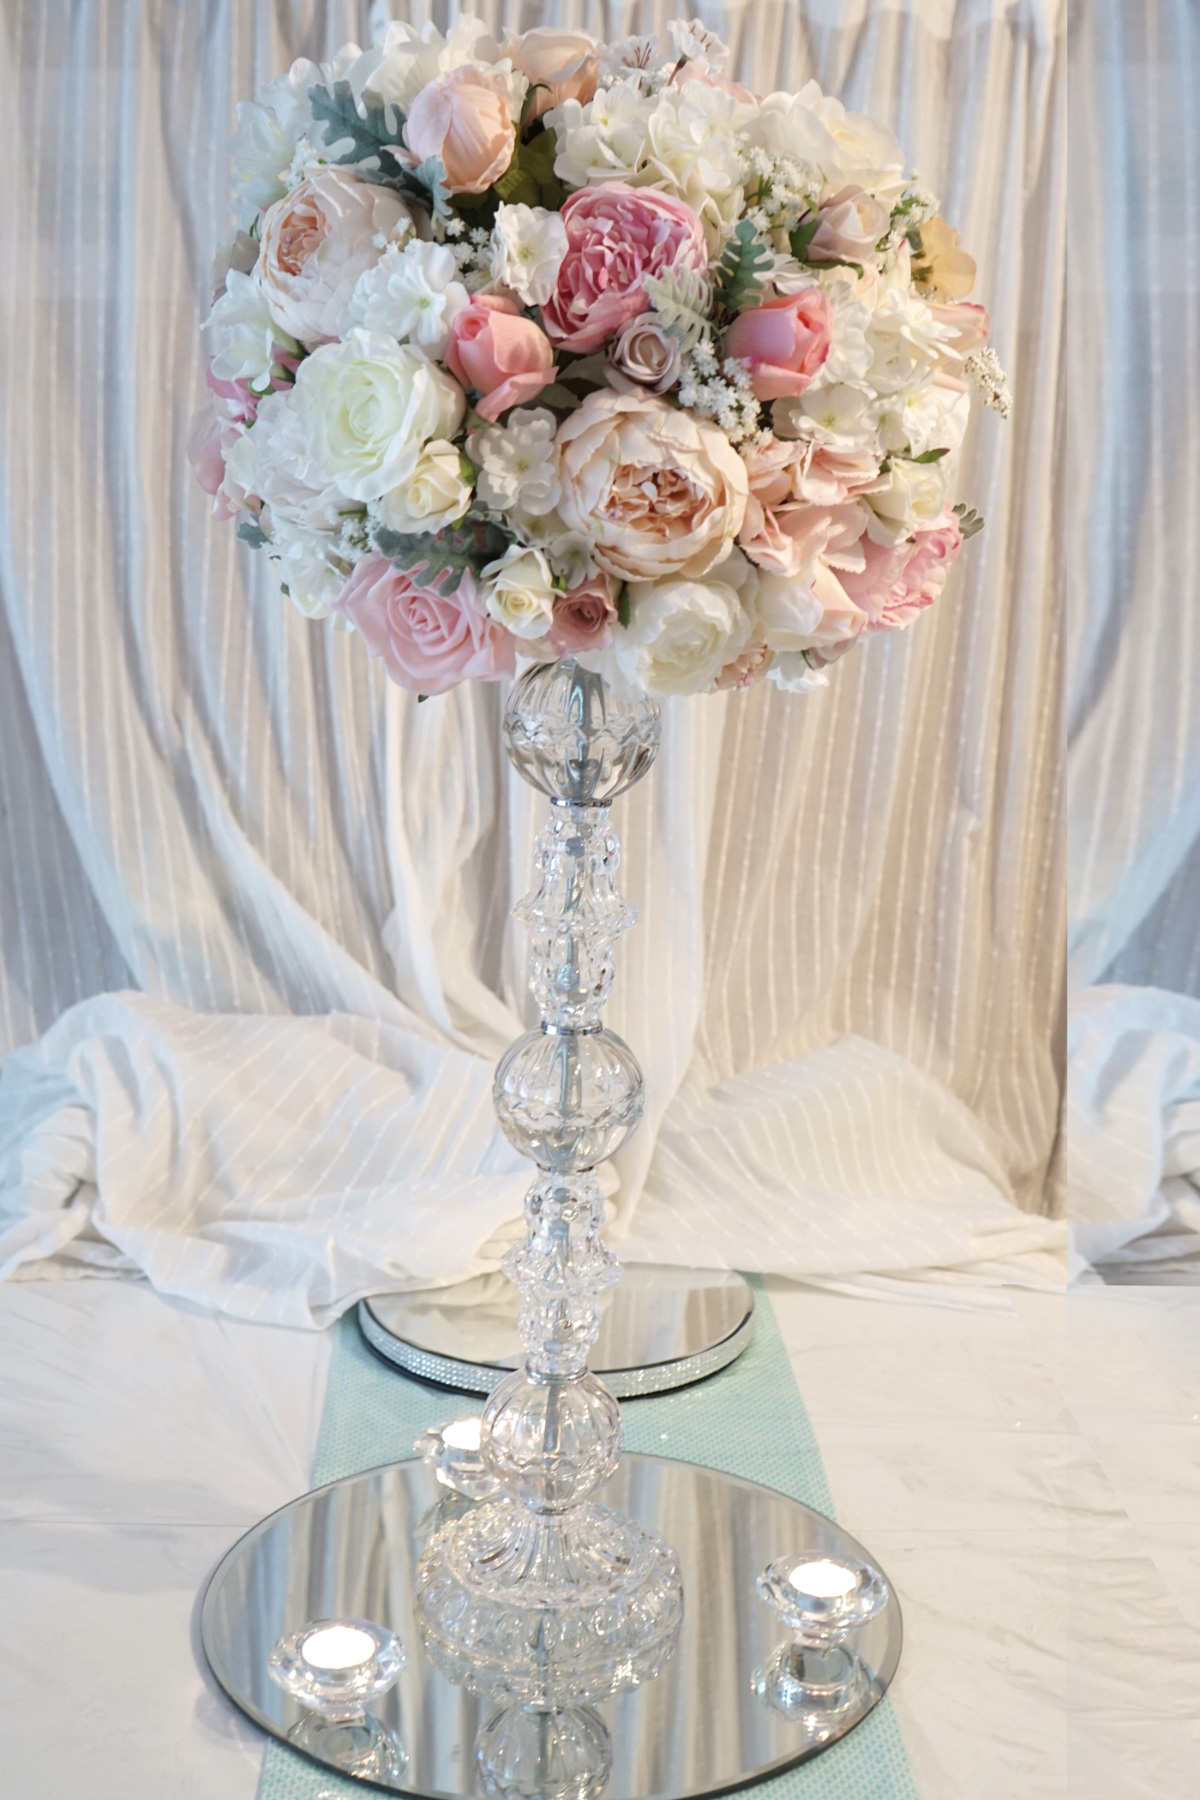 Wedding Centrepieces - Wedding Decorations By Naz